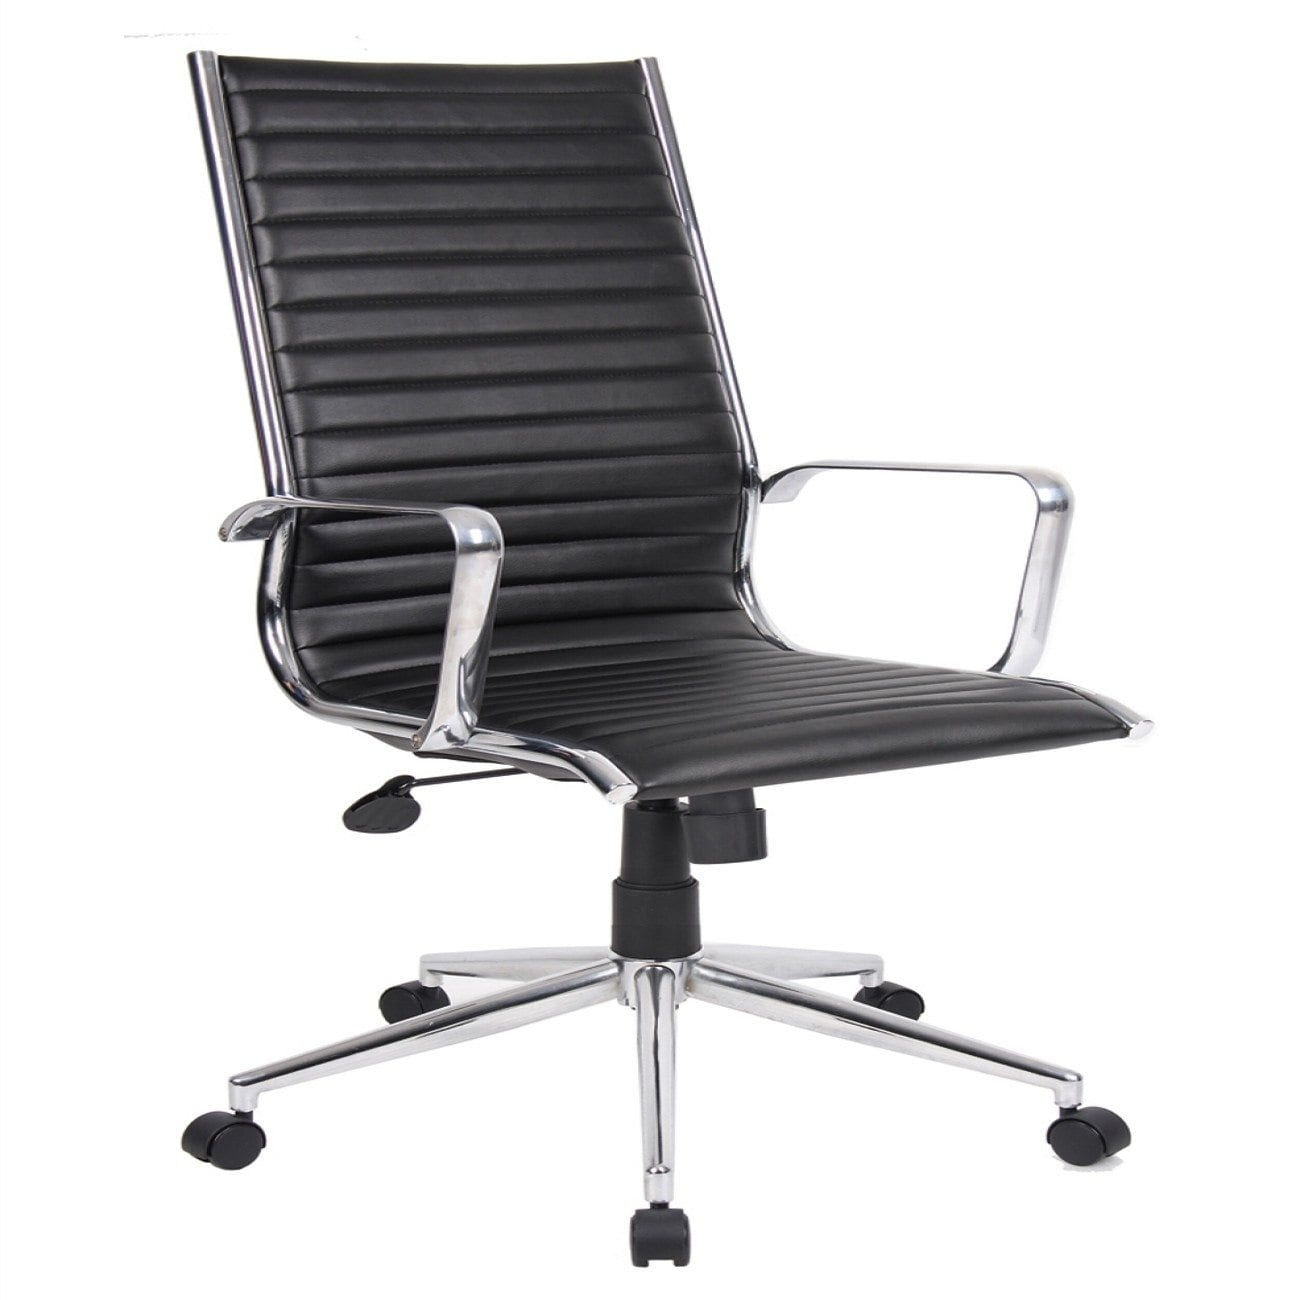 Modern contemporary leather chair penningtons office furniture